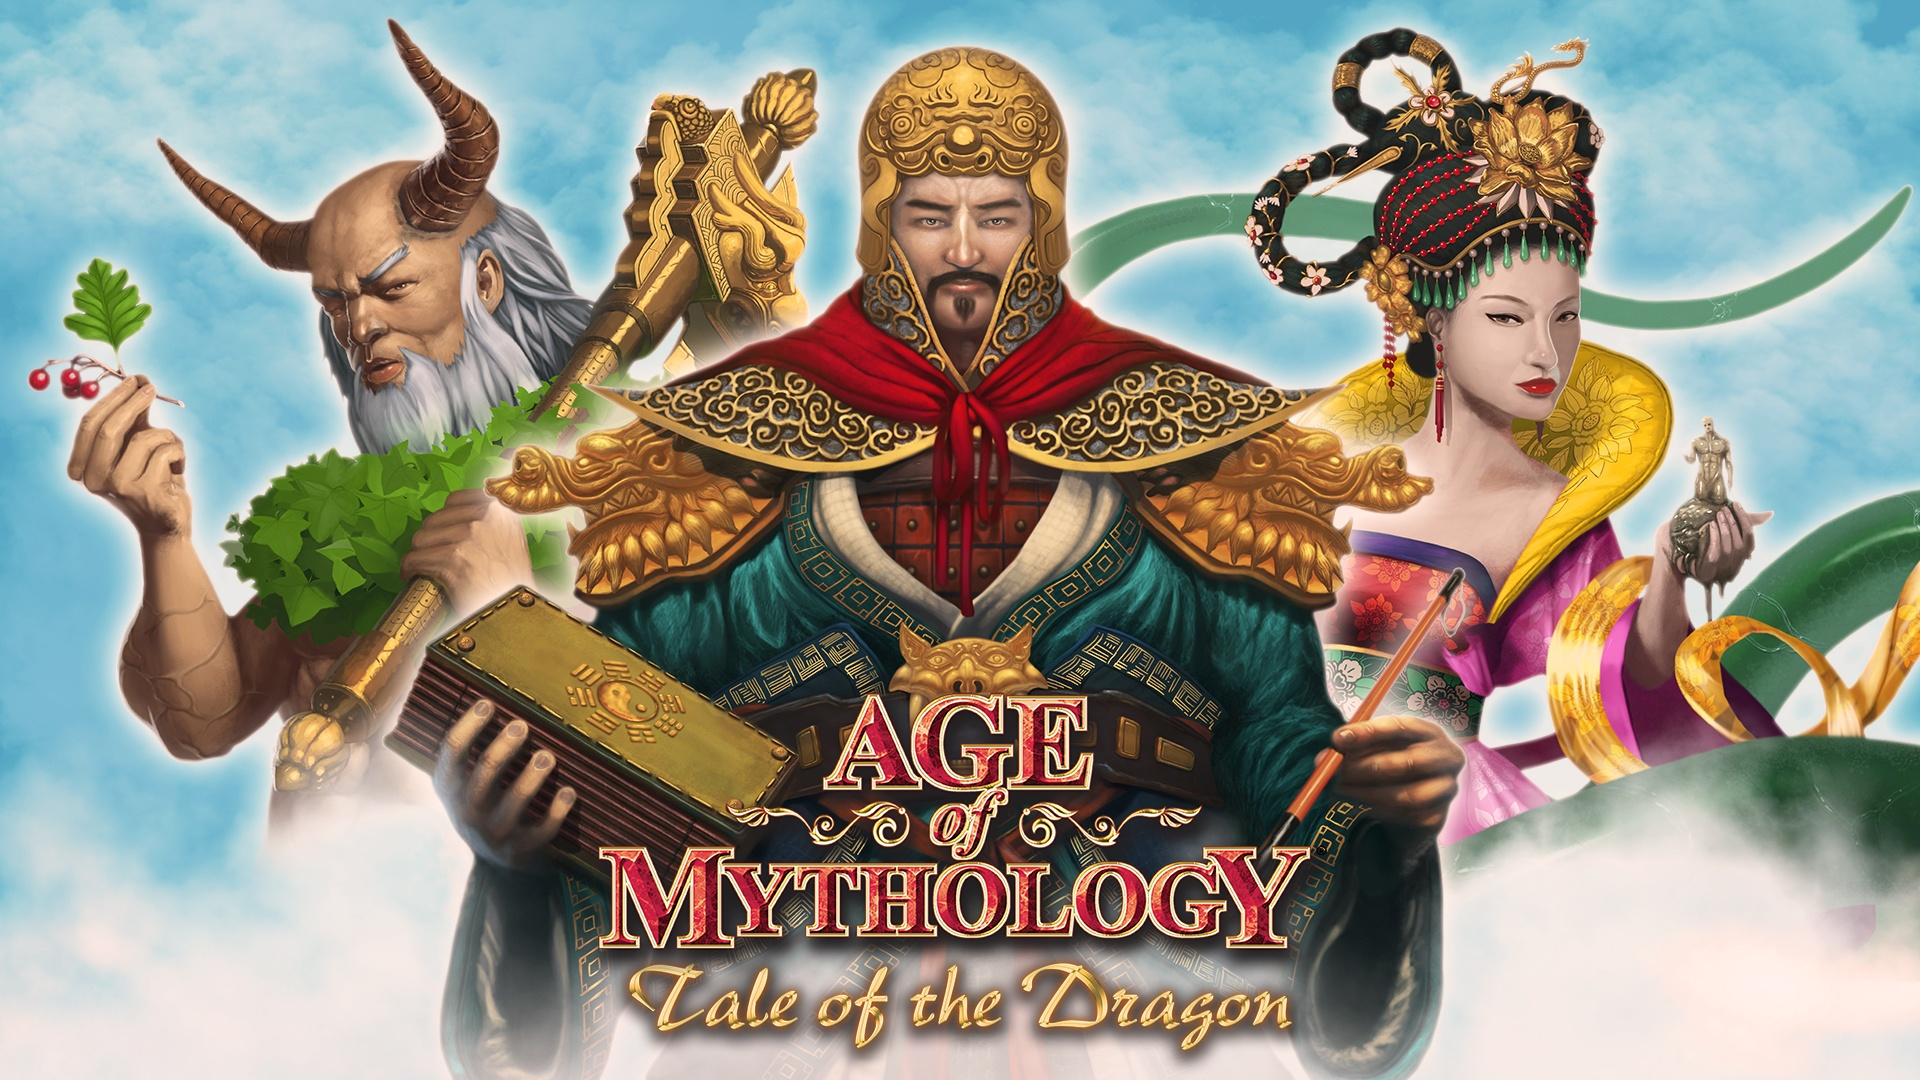 Download Age of Mythology Extended Edition Tale of the Dragon v2.7-PLAZA + Update v2.8-PLAZA